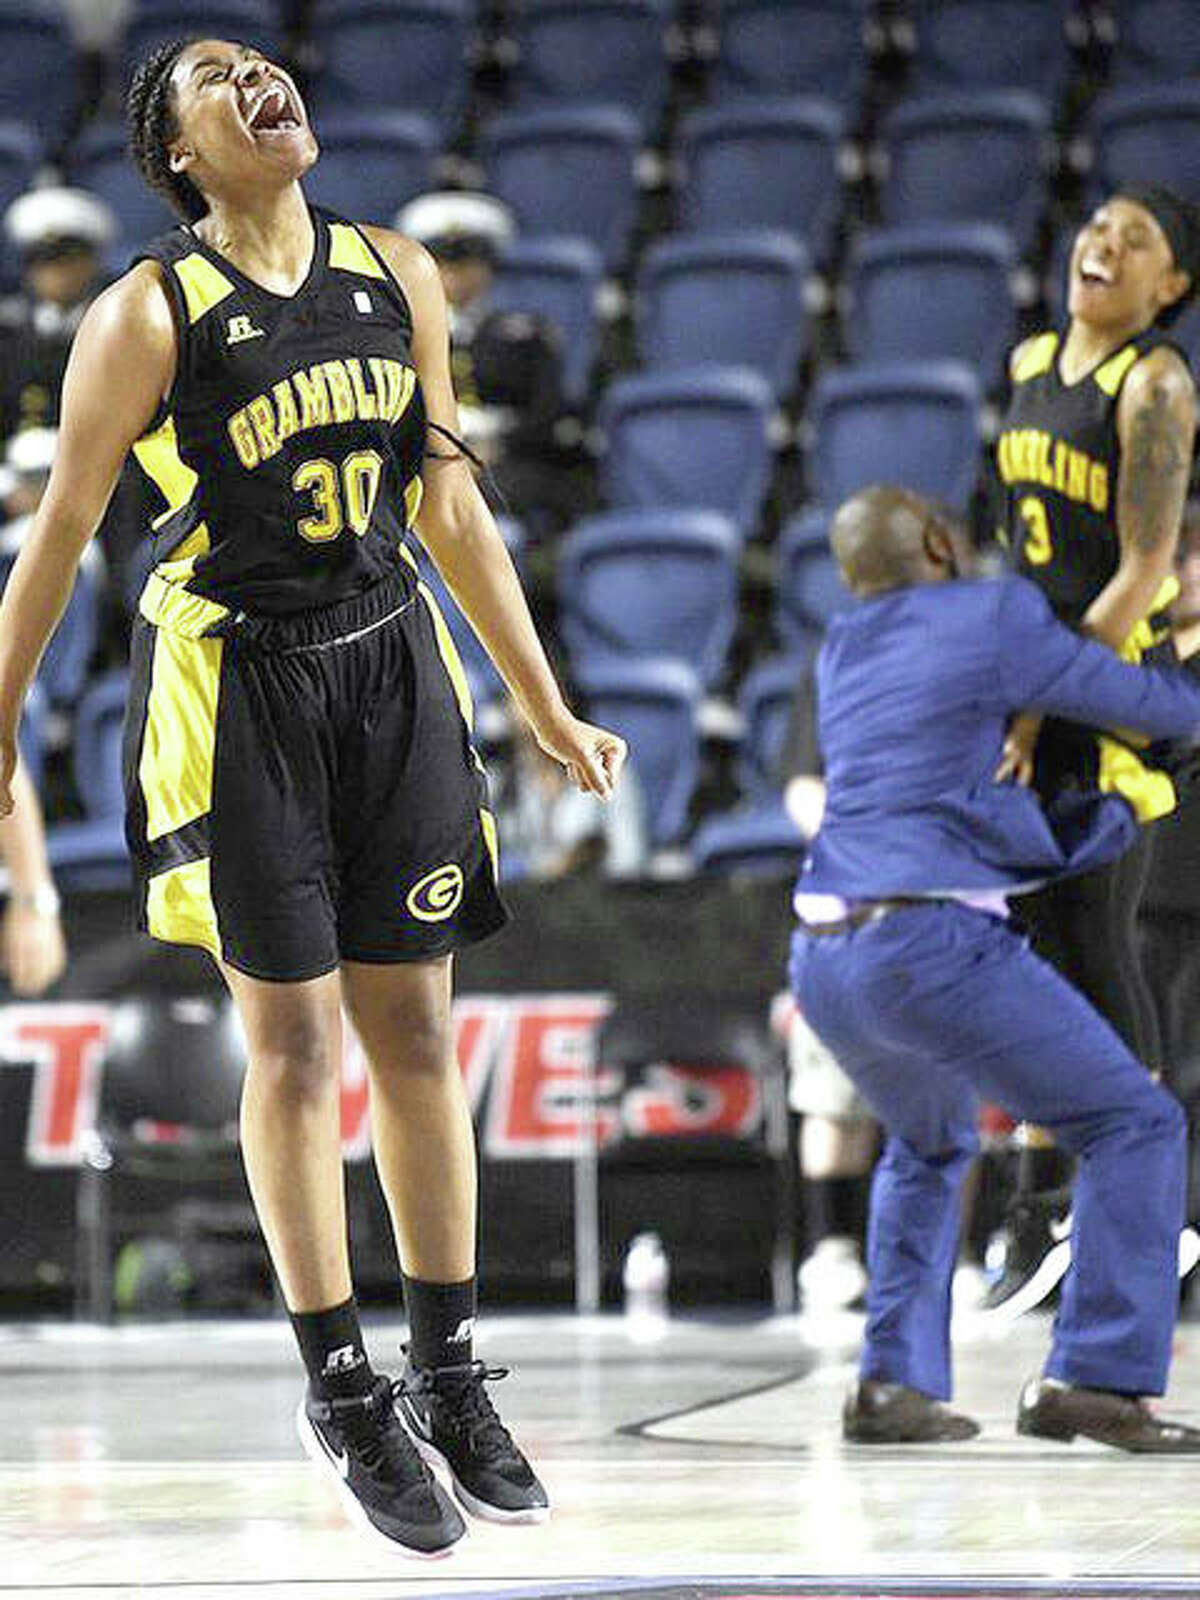 Grambling State forward Alexus Williams (30) celebrates the team's 72-68 win over Southern, in the championship of the Southwestern Athletic Conference last March in Houston.Williams, who averaged 13.1 points per game for Grambling, has transferred to Lewis and Clark Community College. She scored 23 points for LCCC in its season-opening win over Arkansas State-Midsouth.